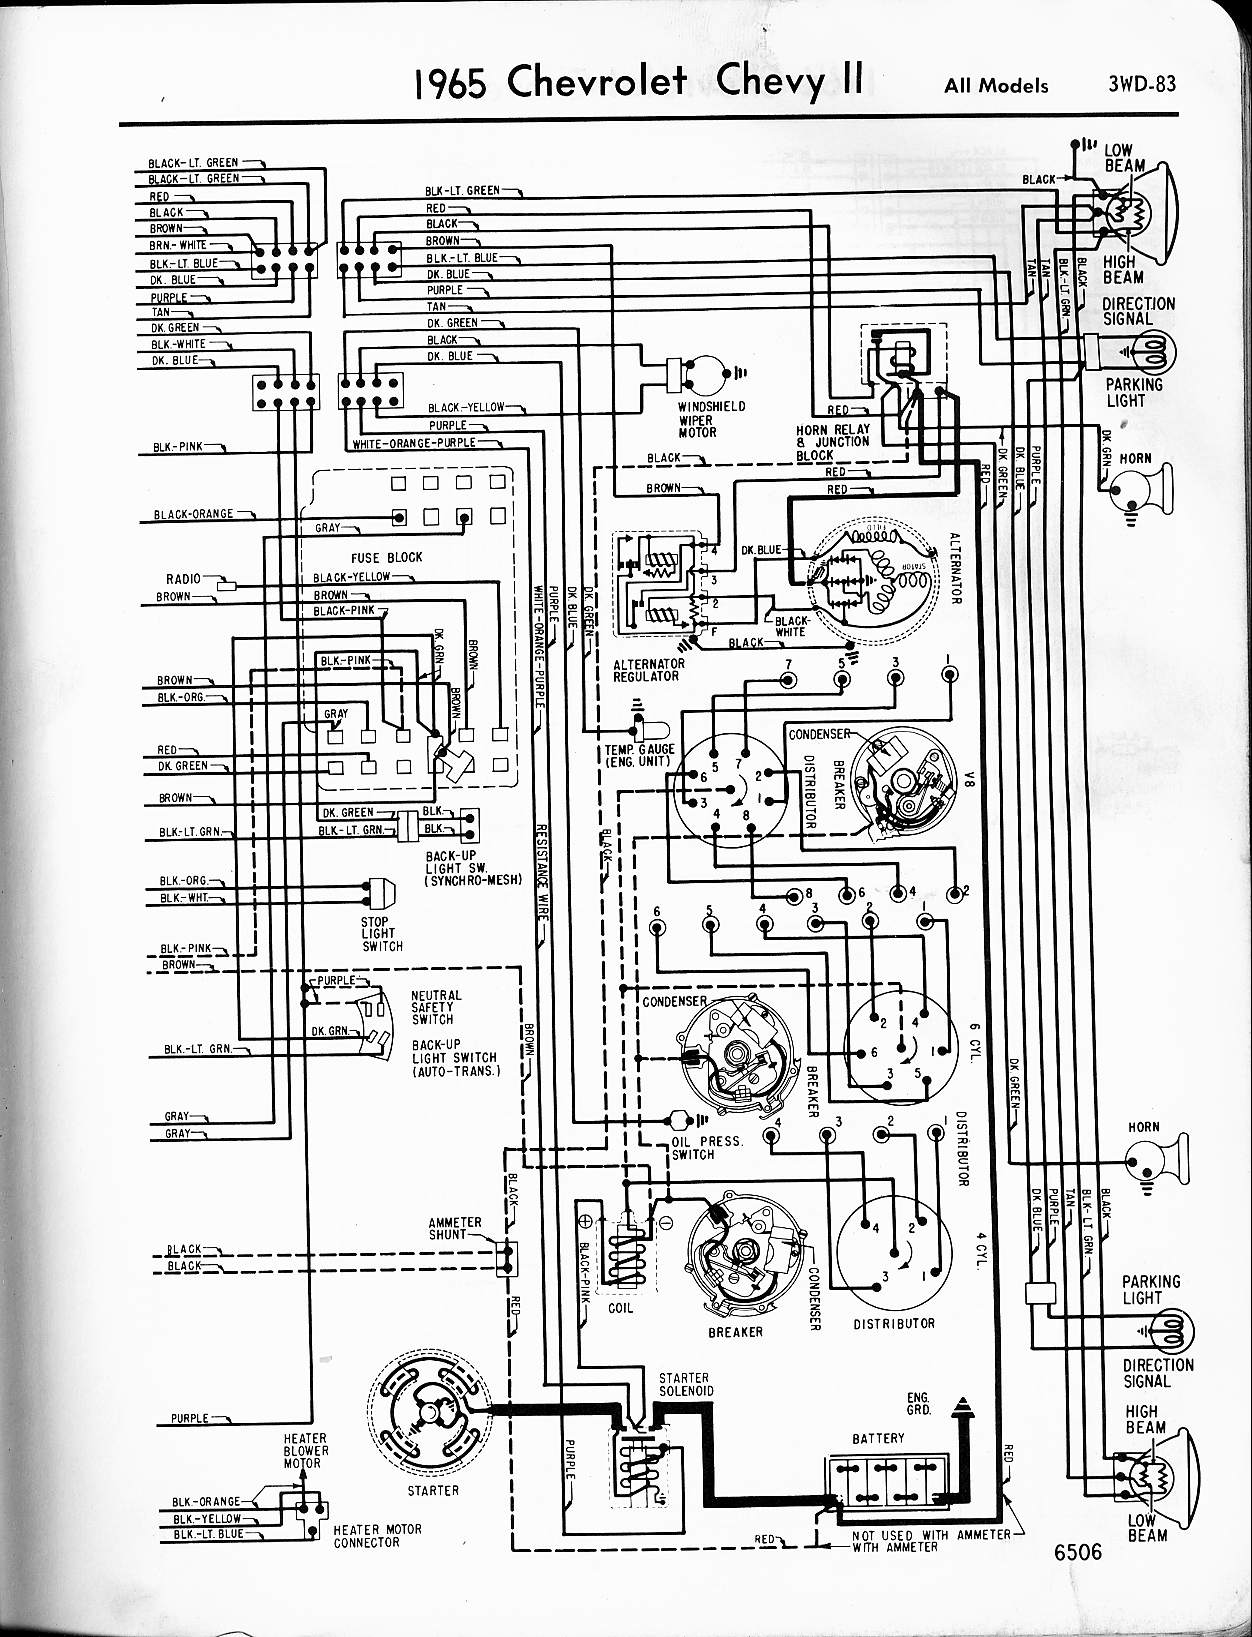 MWireChev65_3WD 083 chevy diagrams 1963 corvette wiring diagram at gsmx.co